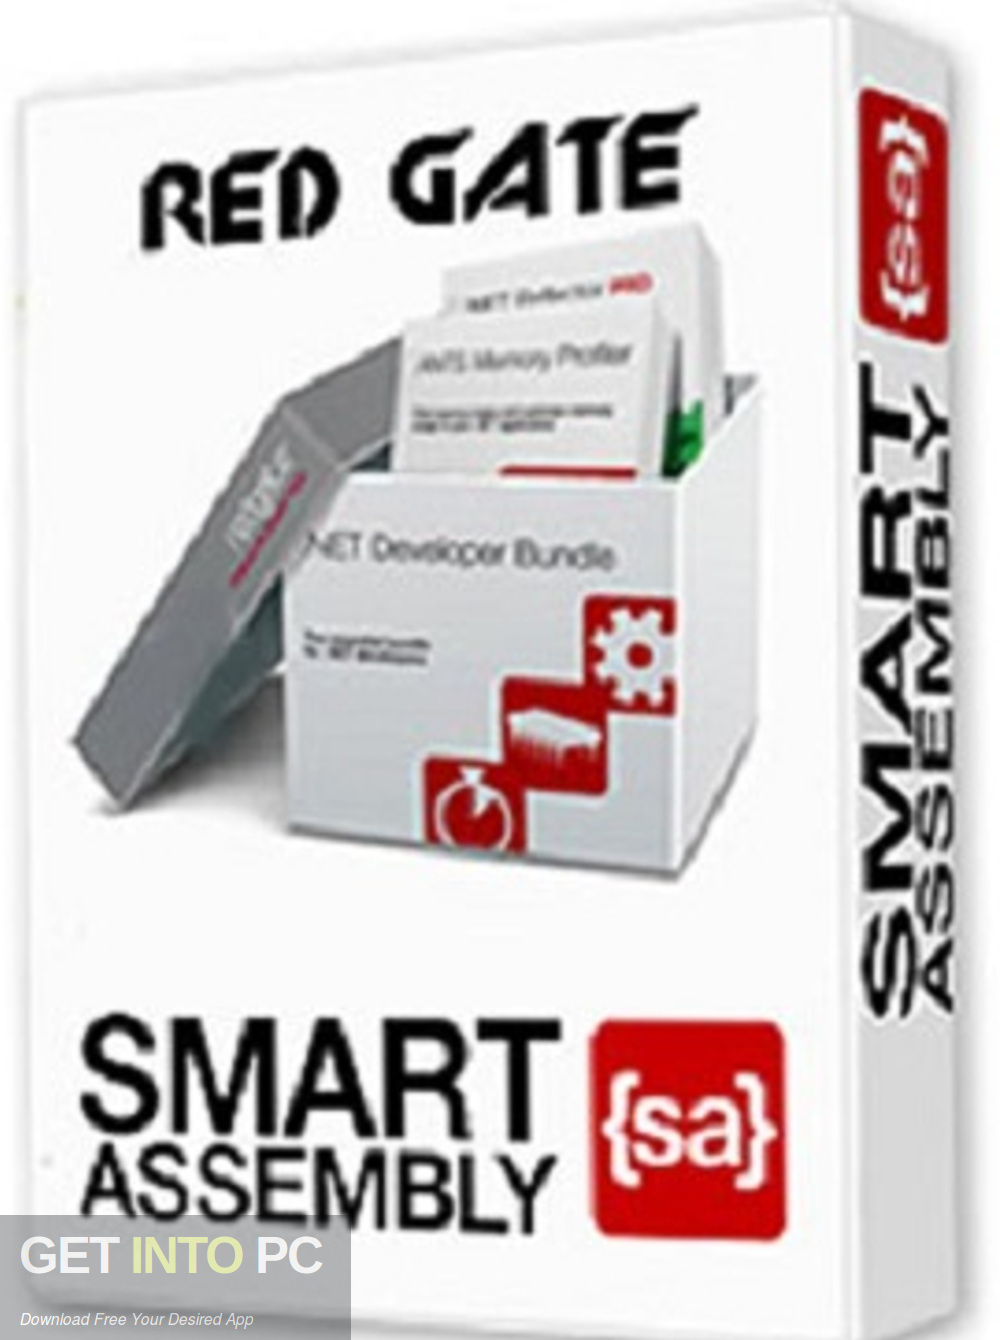 Red Gate SmartAssembly 2019 Free Download-GetintoPC.com